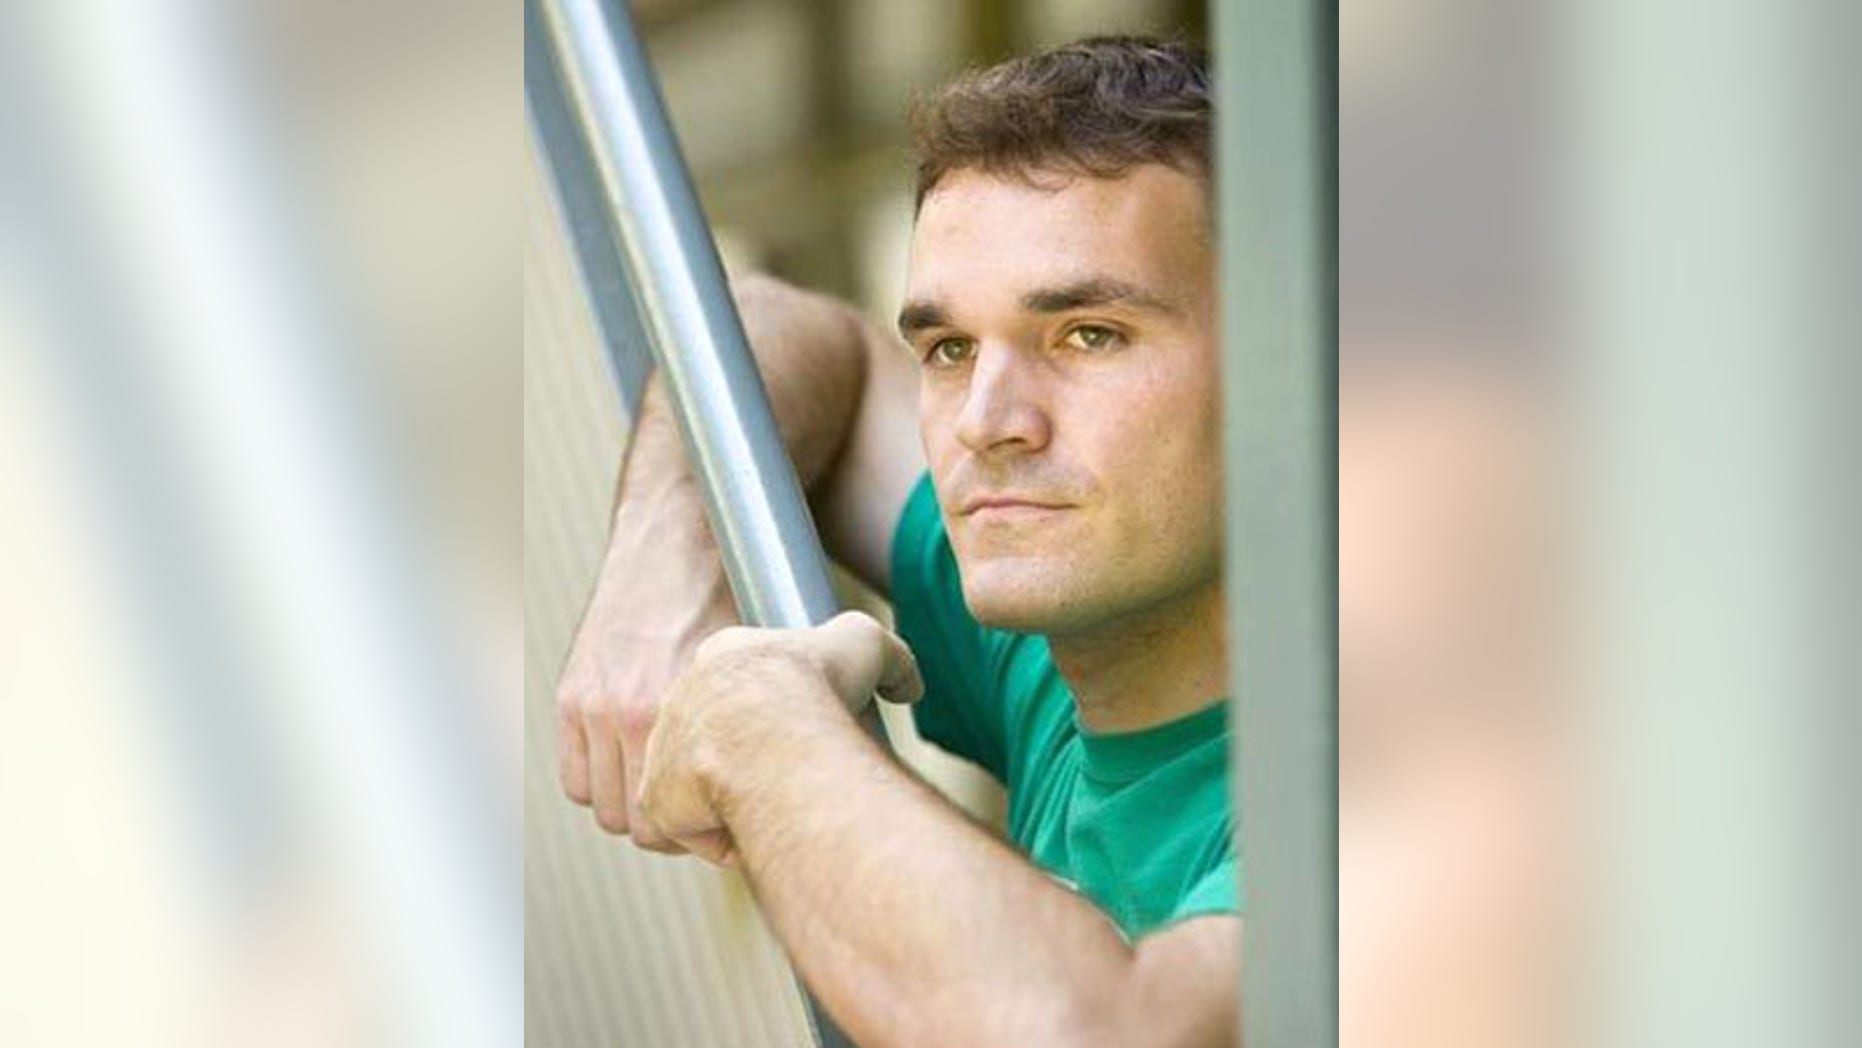 Jim Nicholson, 30, lost his job two days after thwarting a would-be bank robber at a Seattle branch.